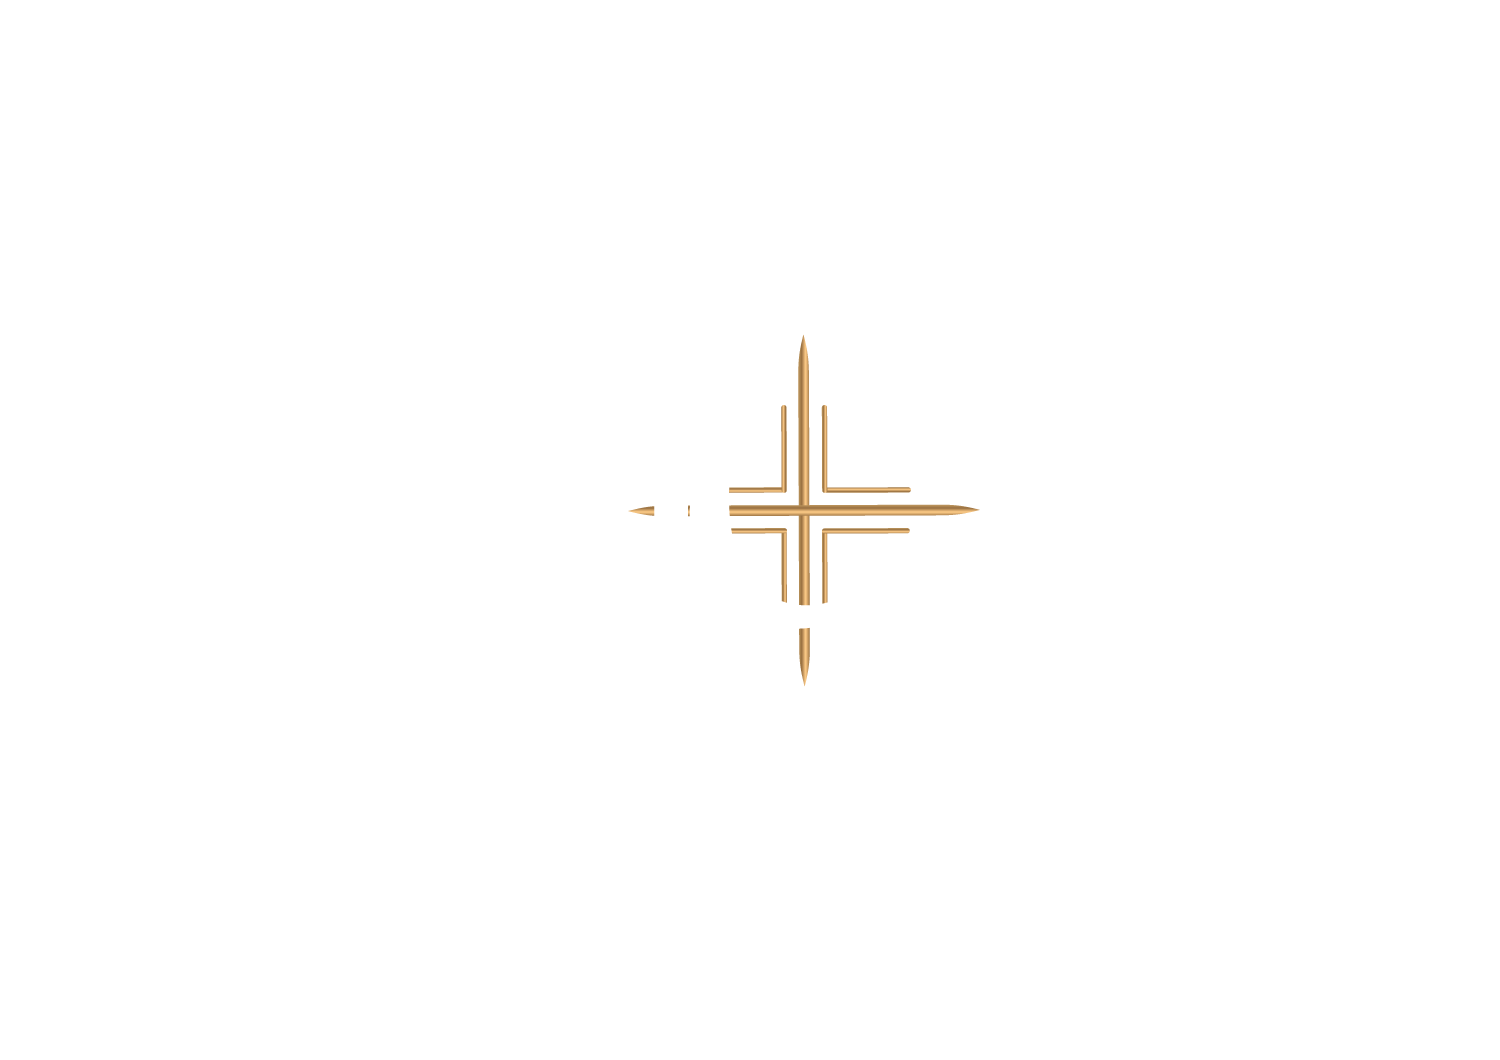 My Creative Agency